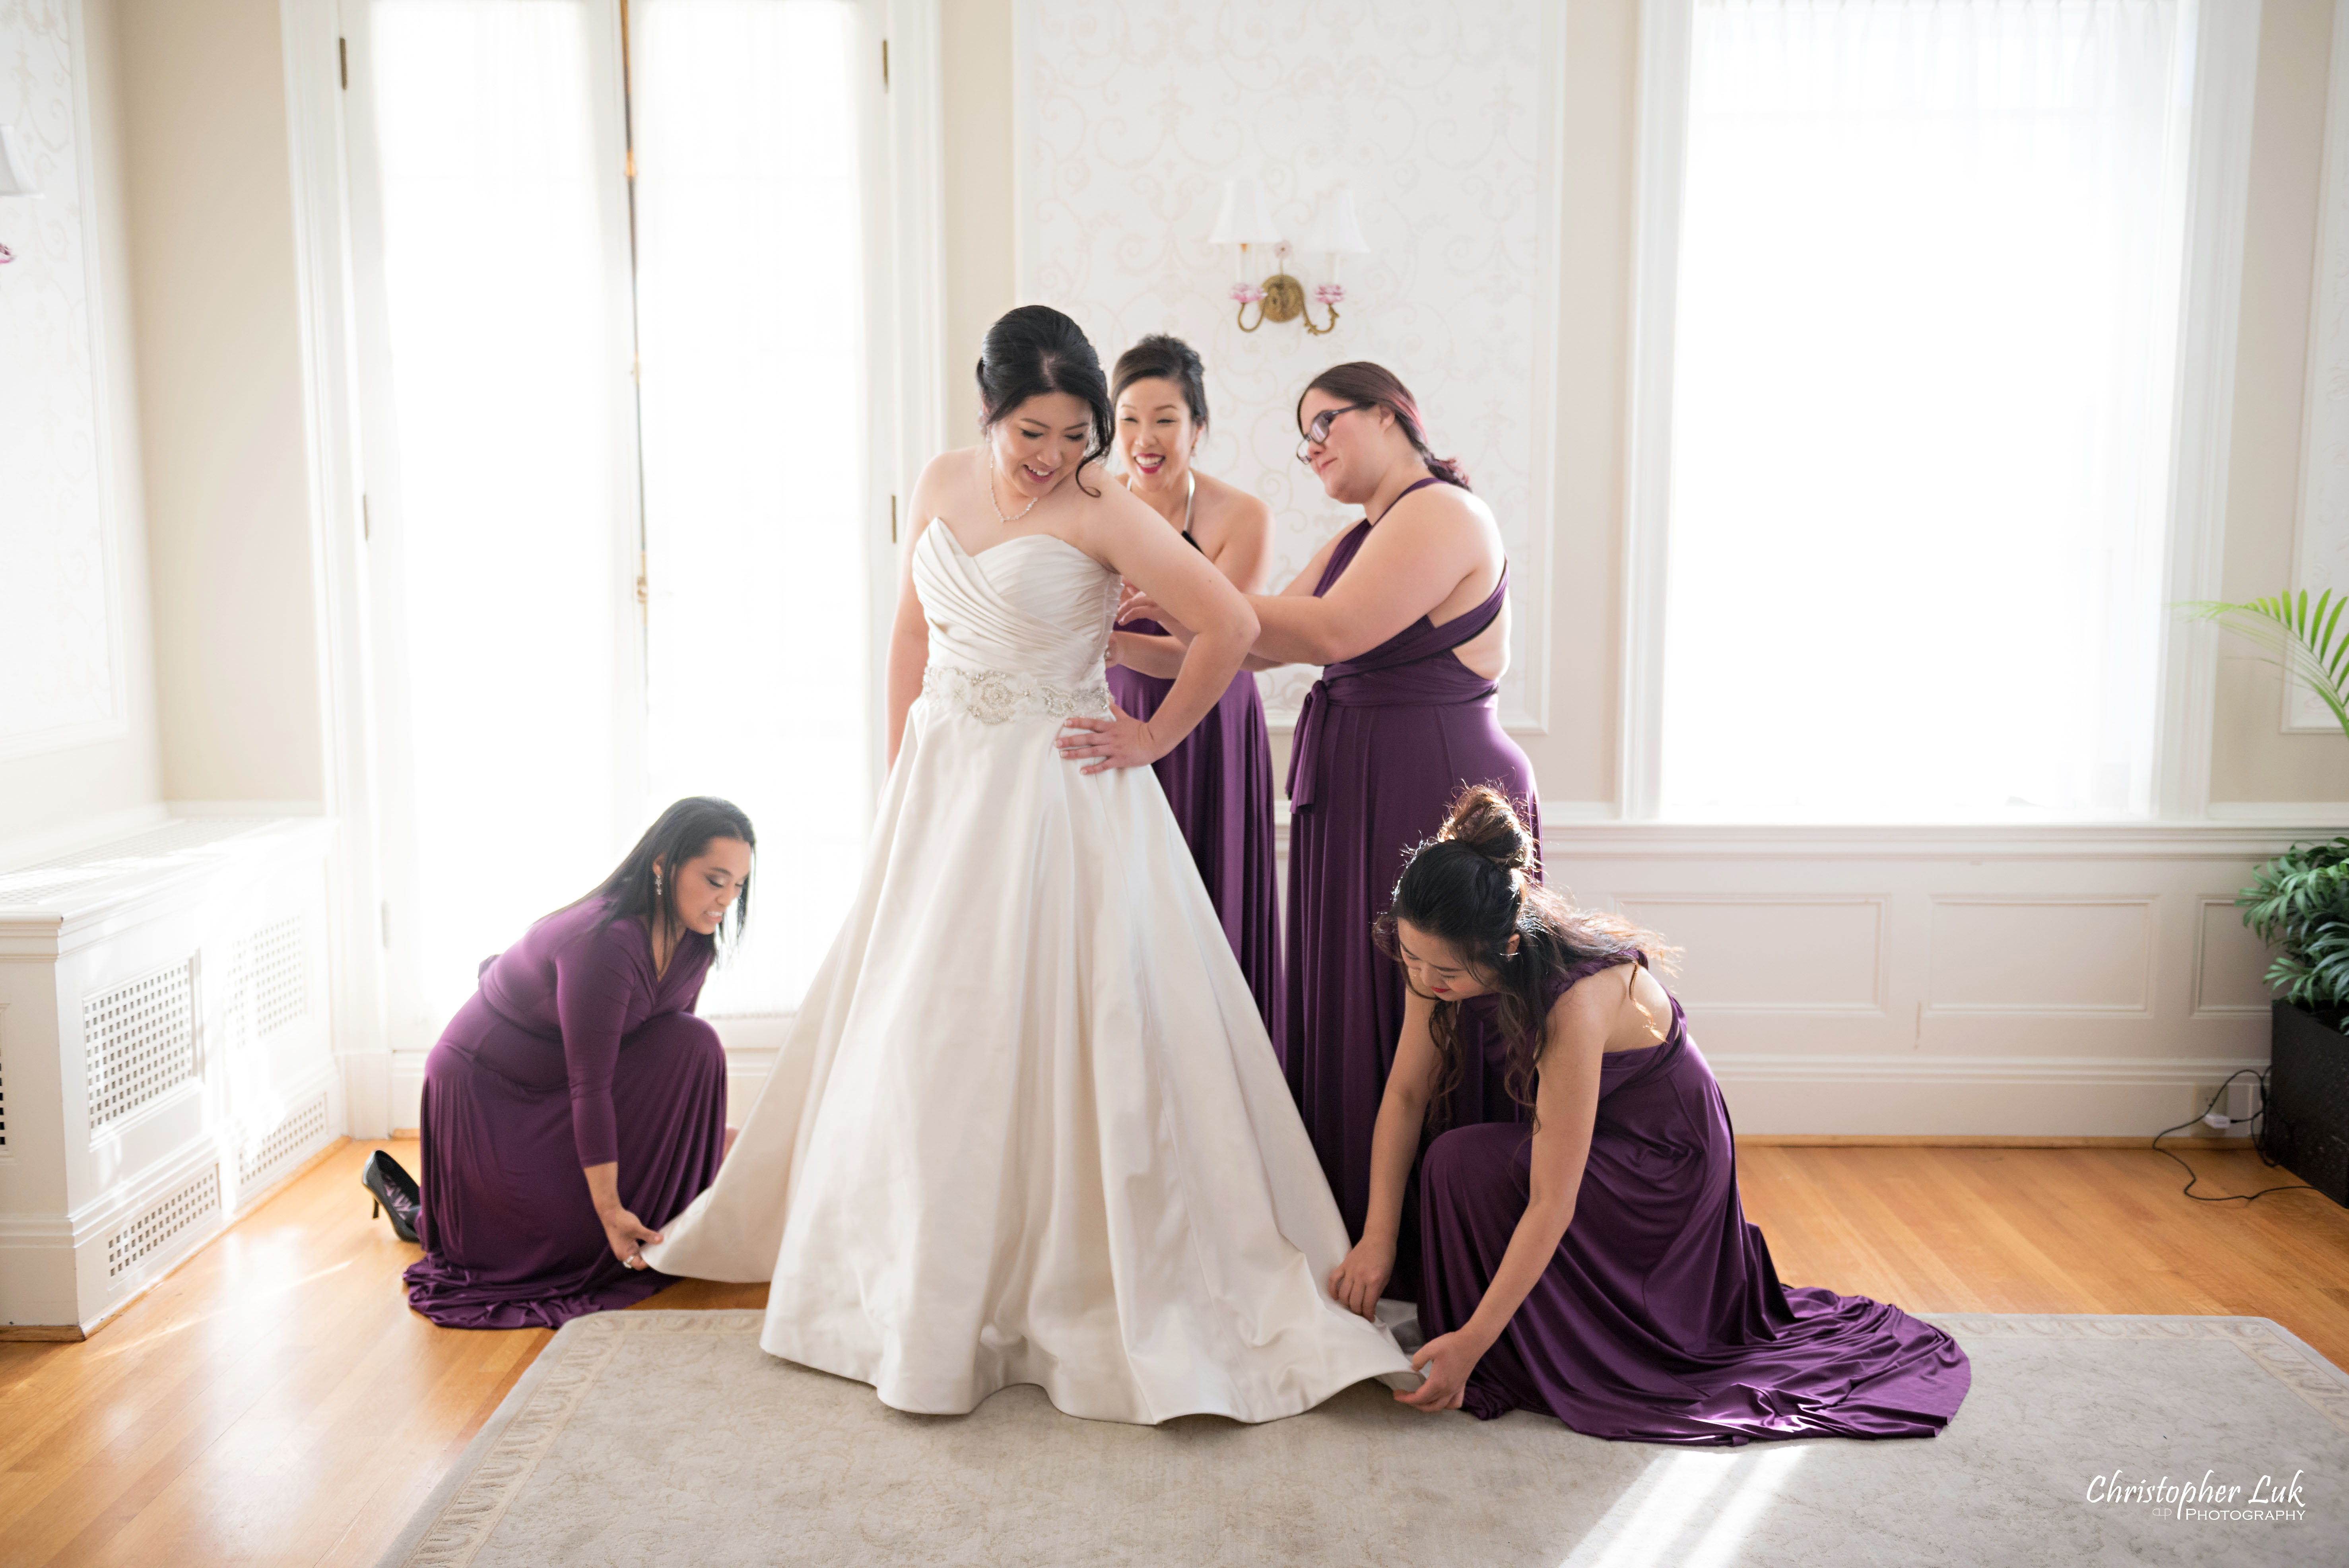 Toronto Wedding Photographer Heintzman House Winter Wedding Markham York Region Historic Estate Event Venue Photojournalistic Documentary Candid Natural Creative Bridal Room Bride Bridesmaids Getting Ready Corset Dress Gown Plum Purple Henkaa